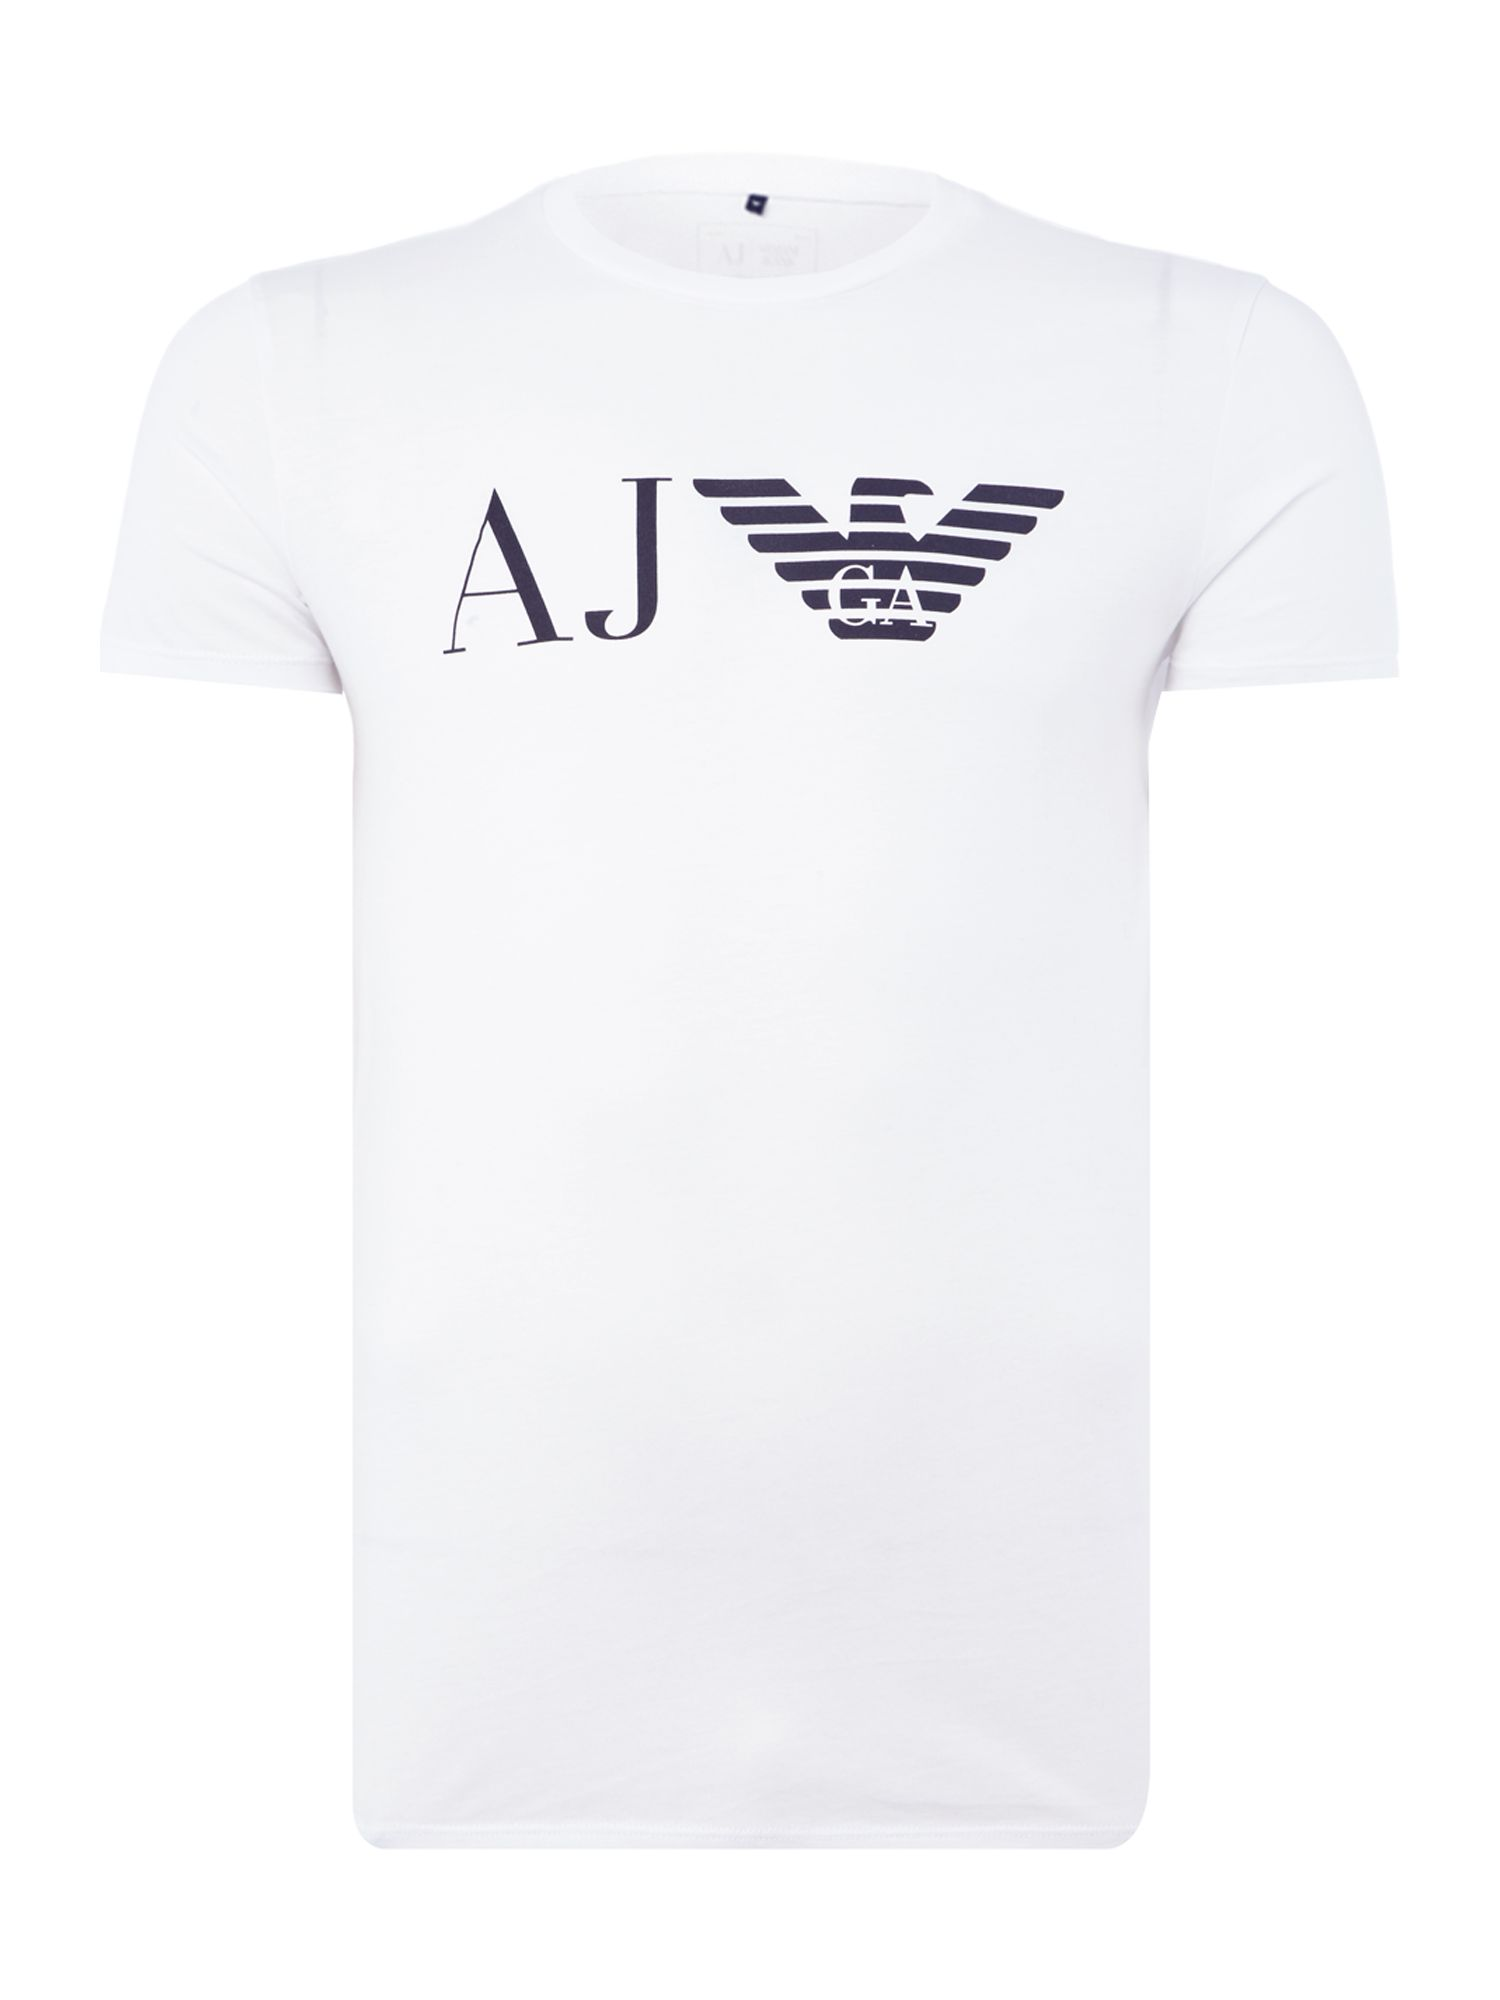 Men's Armani Jeans Regular fit AJ eagle logo printed t shirt, White